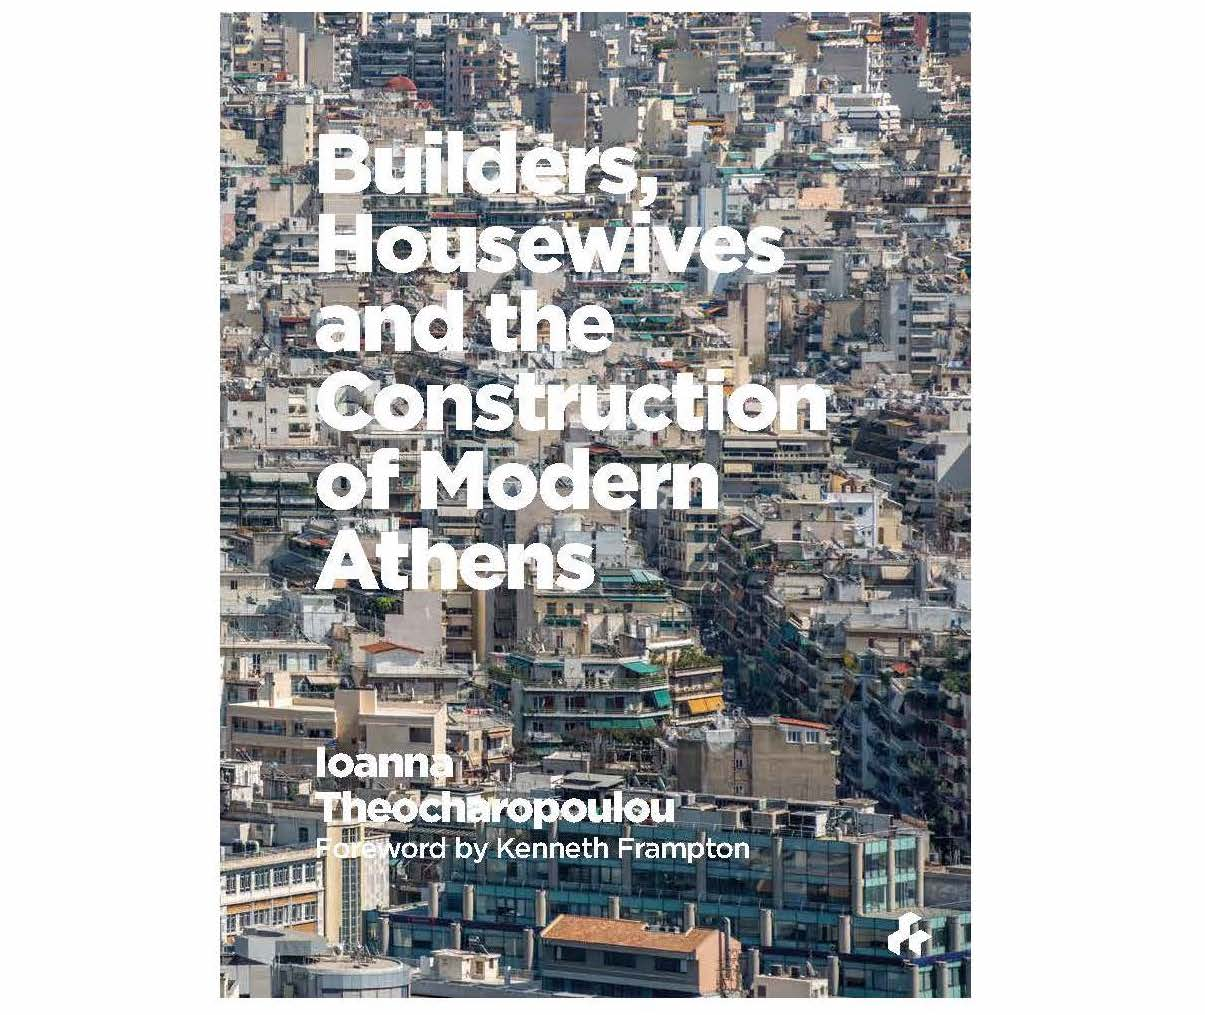 Builders, Housewives and the Construction of Modern Athens  book cover, featuring photography by Panos Kokkinias. Available fall 2018.